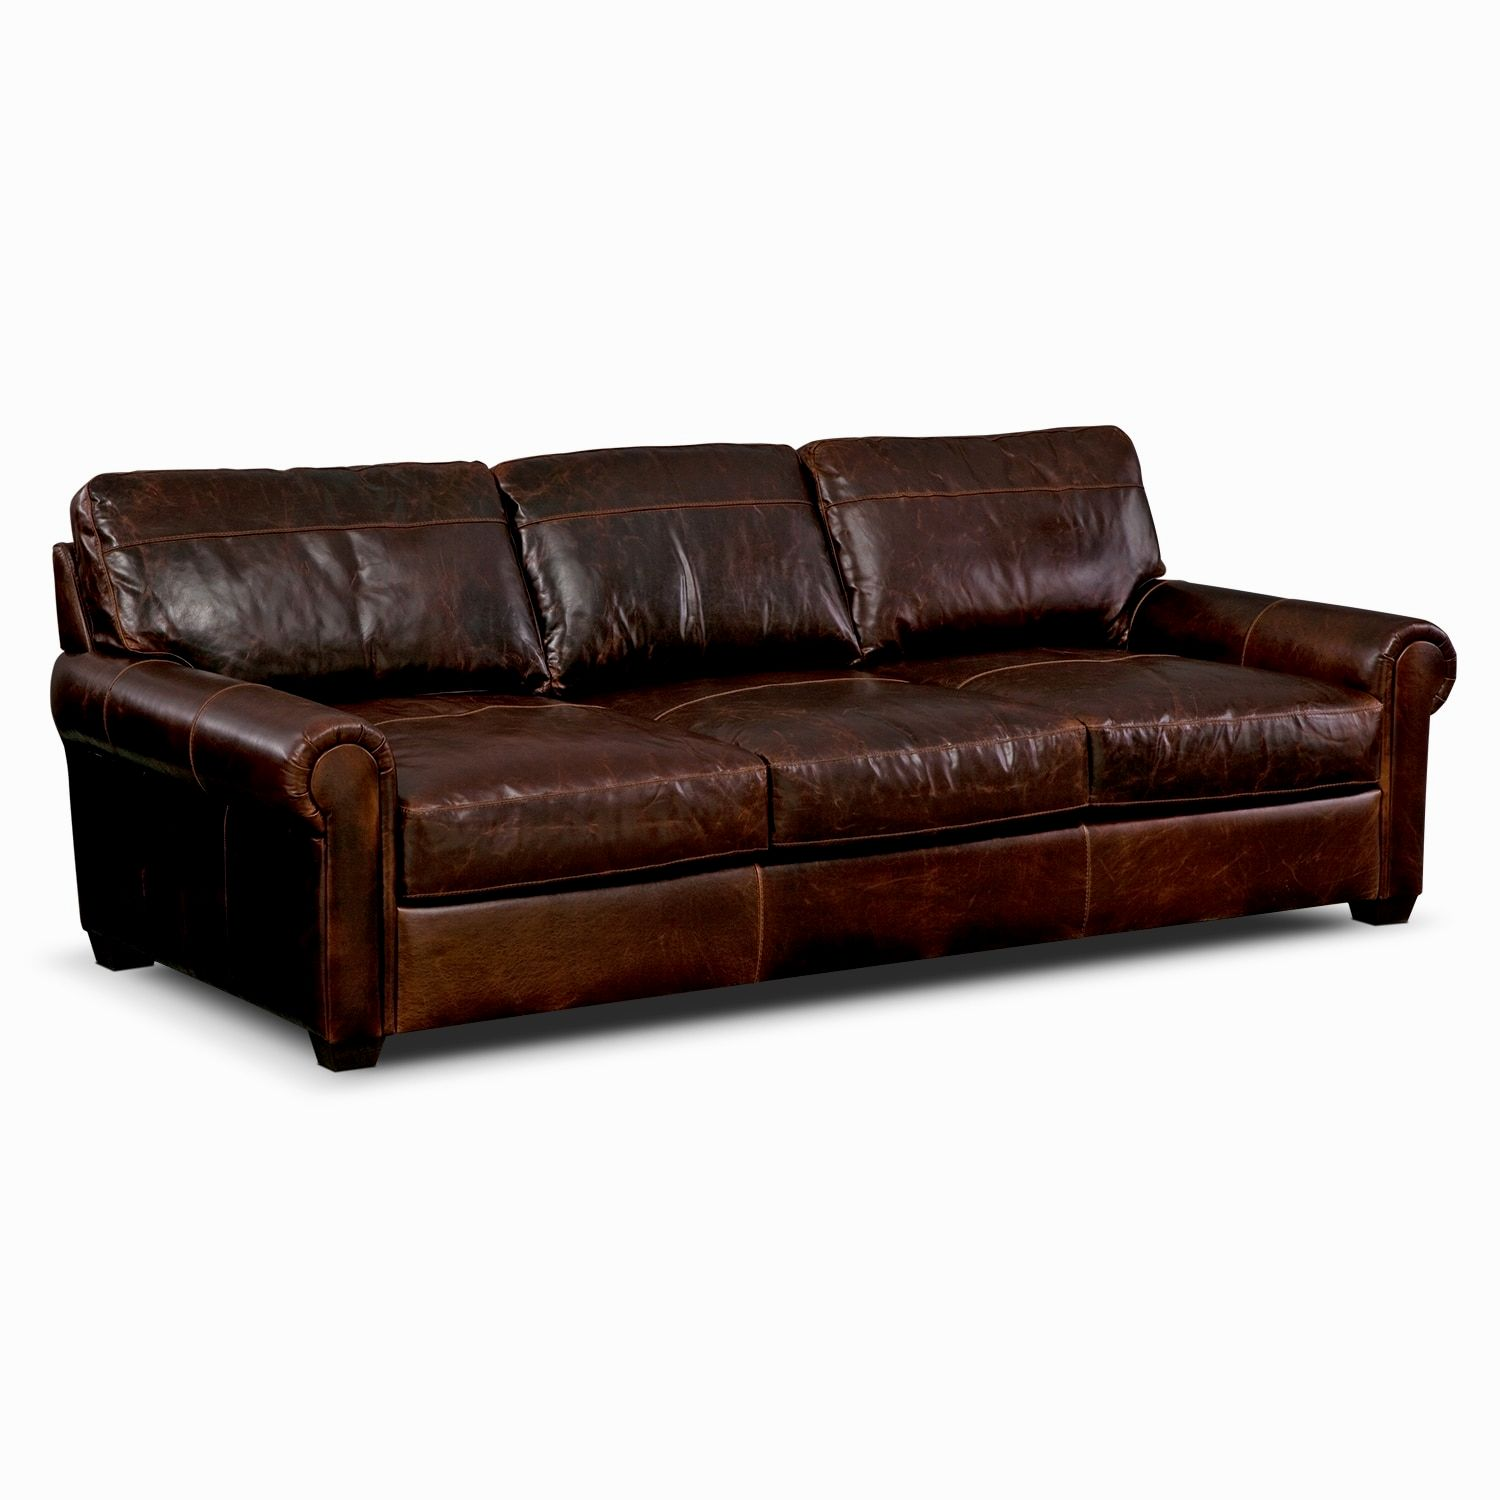 unique black leather sofas collection-Amazing Black Leather sofas Online